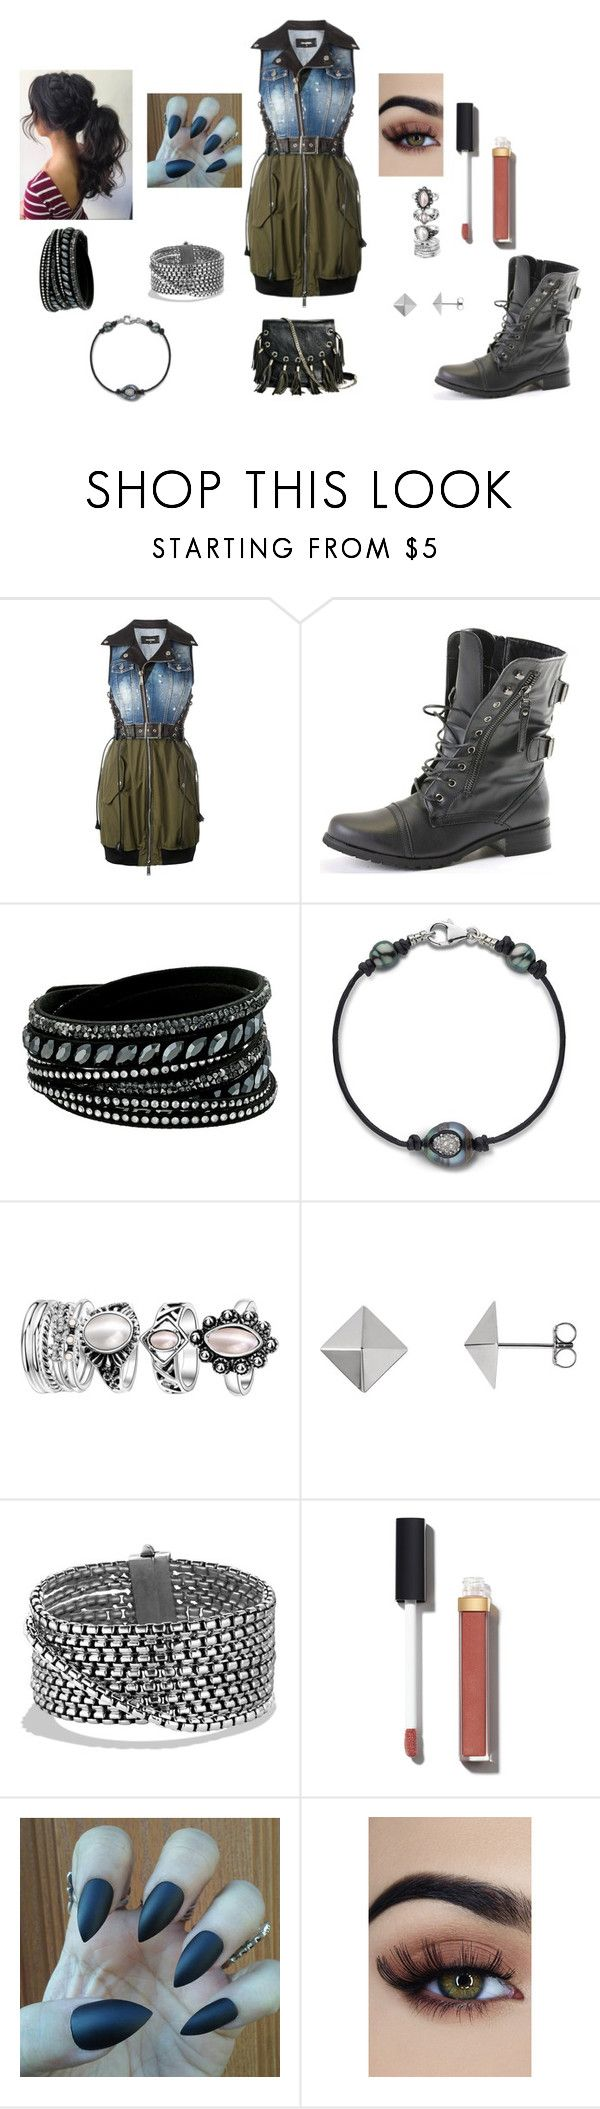 """""""Untitled"""" by chelbik on Polyvore featuring Dsquared2, CO, Swarovski, David Yurman, Chanel and GUESS by Marciano"""